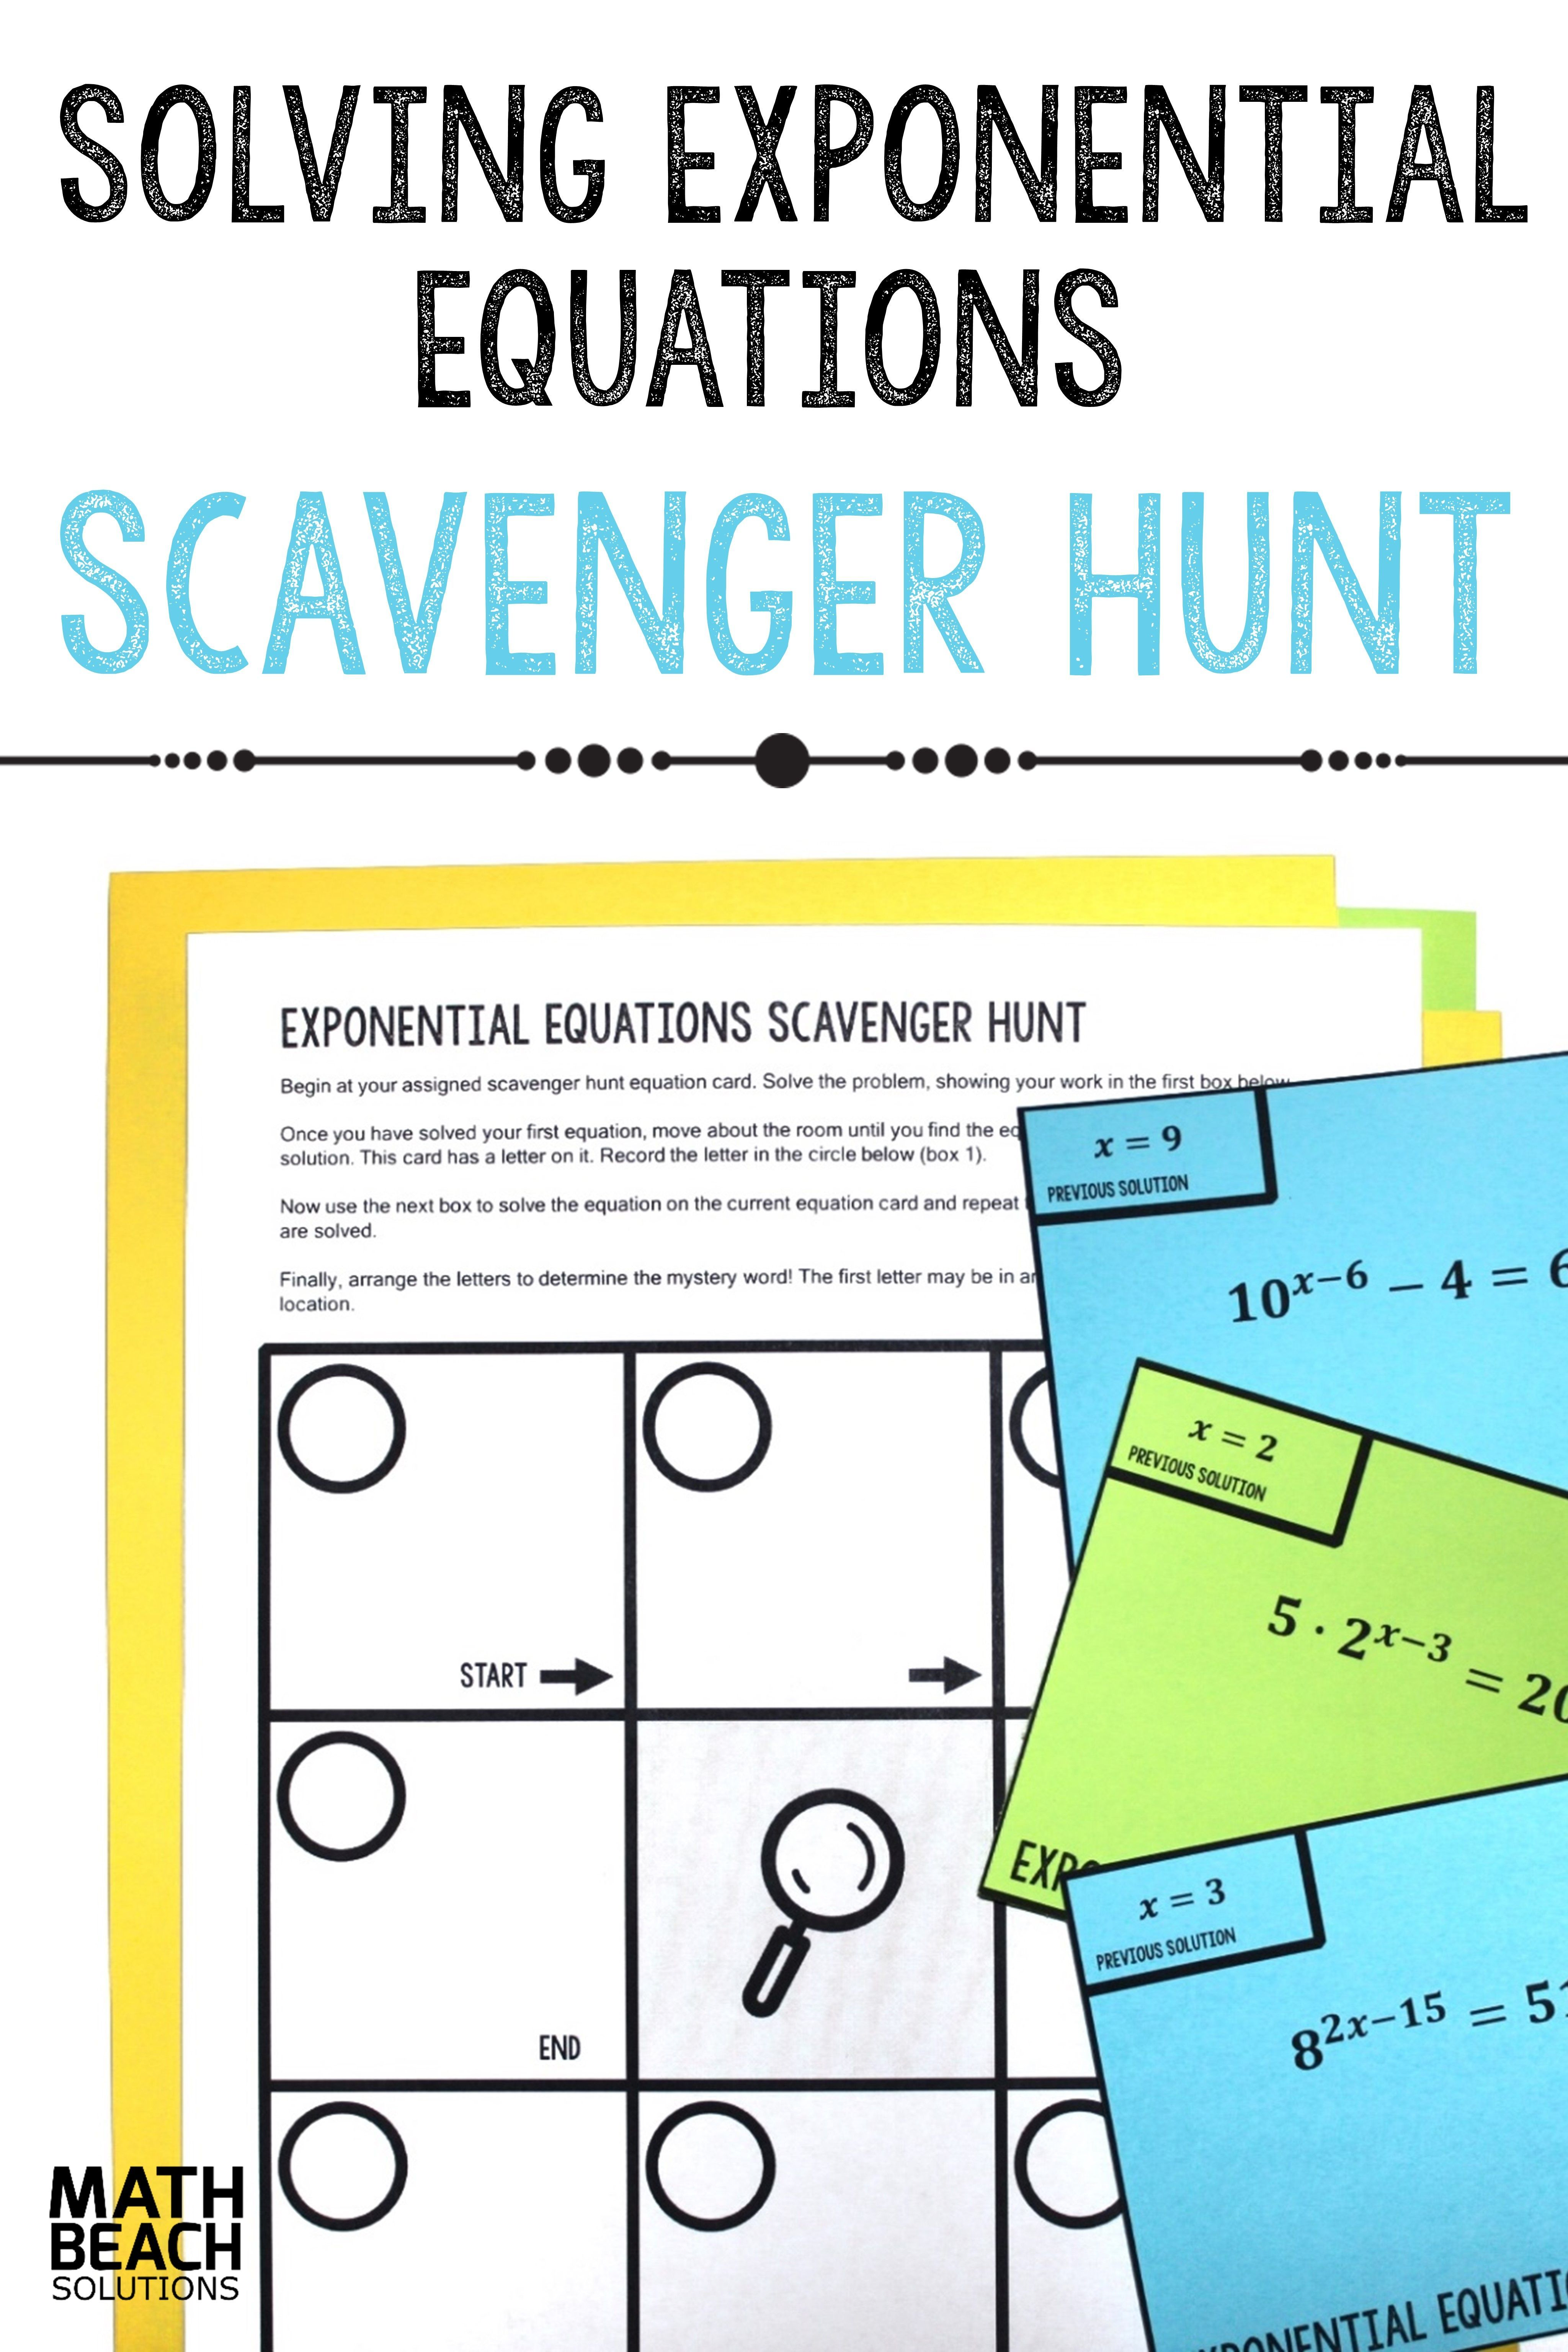 Solving Exponential Equations Scavenger Hunt Activity